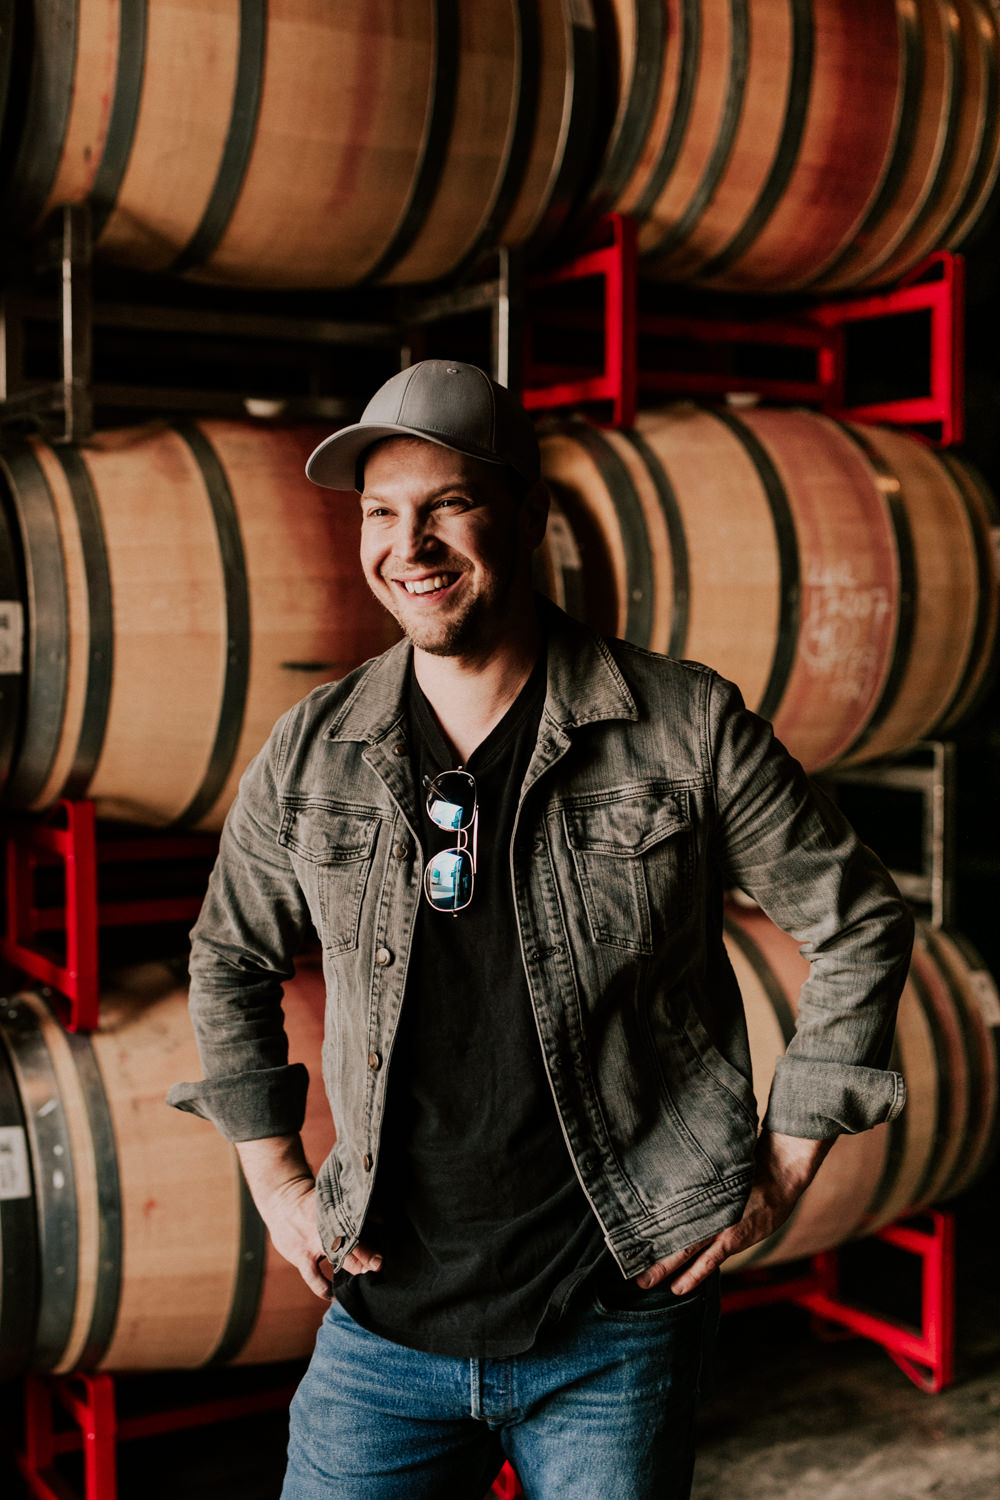 gavin-degraw-smiling-portrait-wine-barrels-vineyard-AnnaLeeMedia